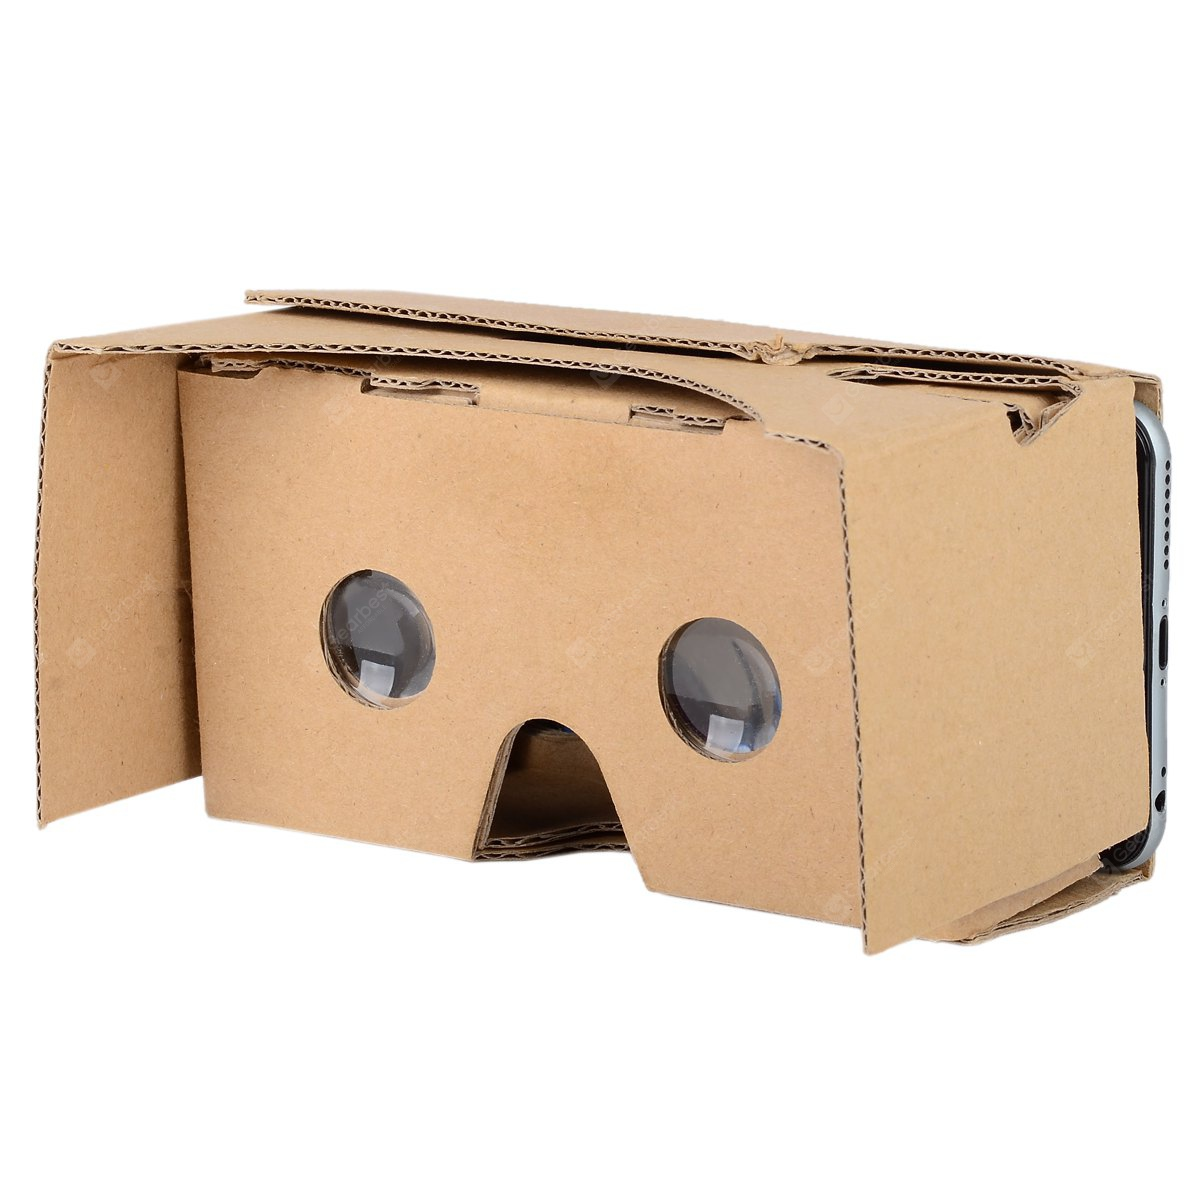 LightsCastle 2015 DIY Cardboard 2 Virtual Reality VR 3D Glasses for iPhone / Samsung Phone 150377201